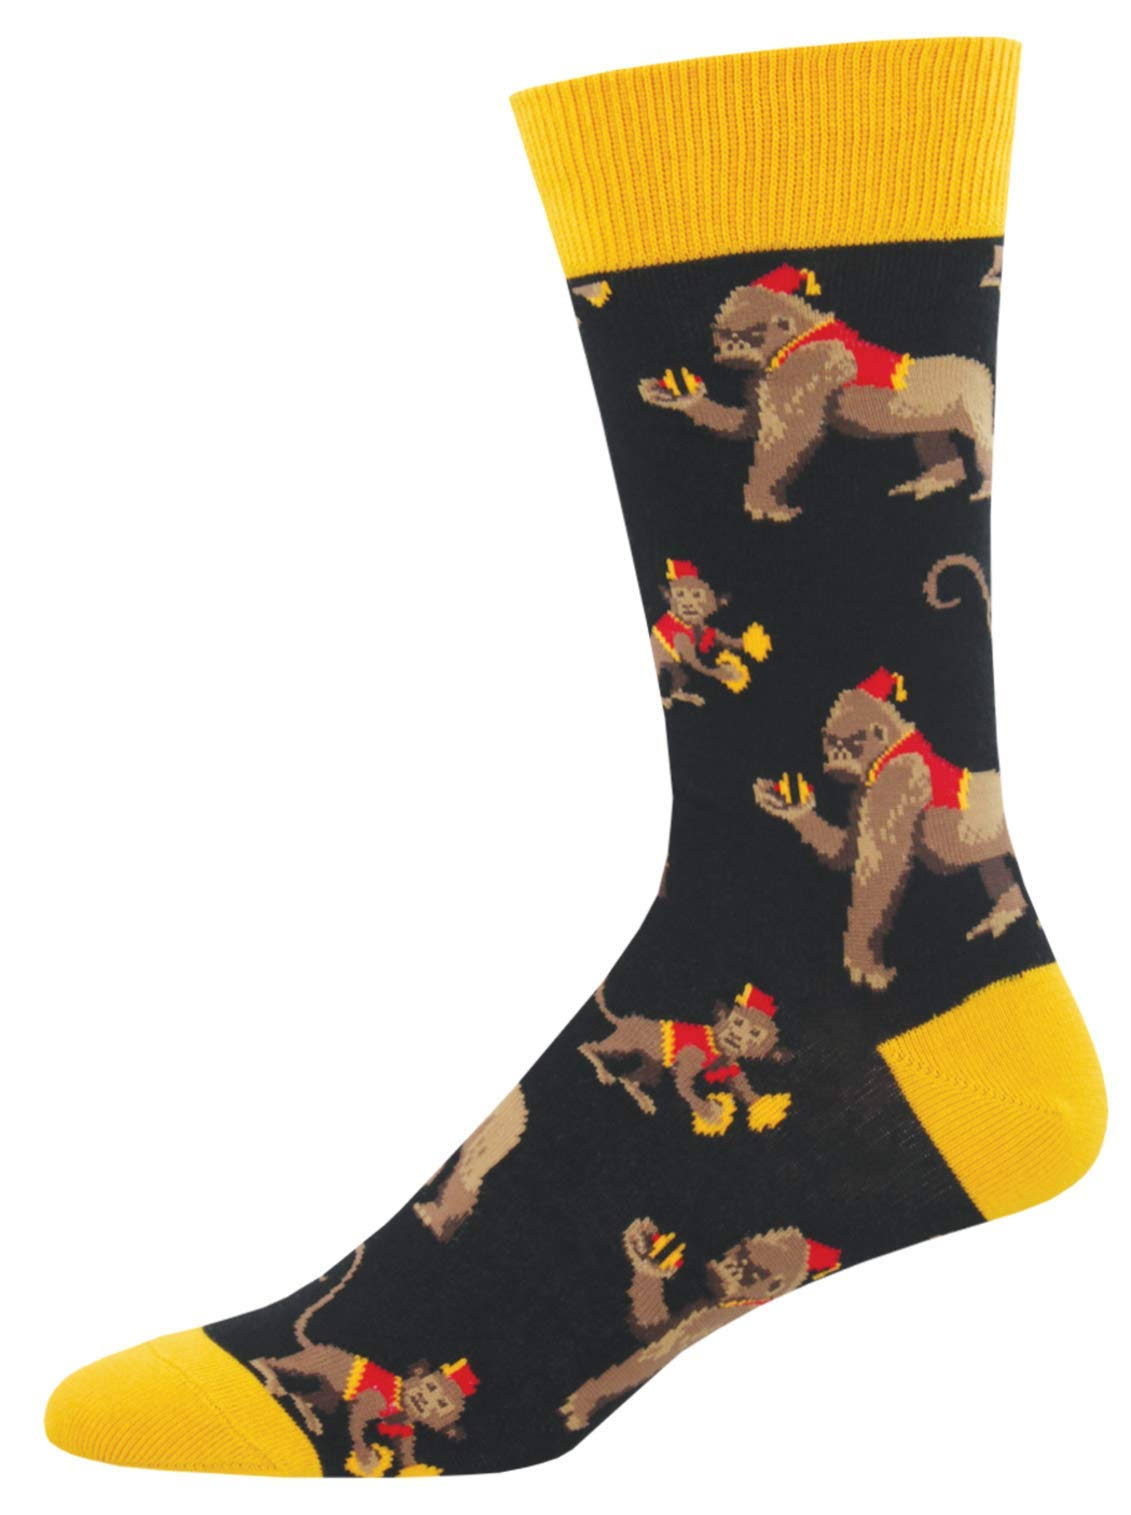 Socksmith Mens Novelty Crew Socks This Band Is Bananas - One Size